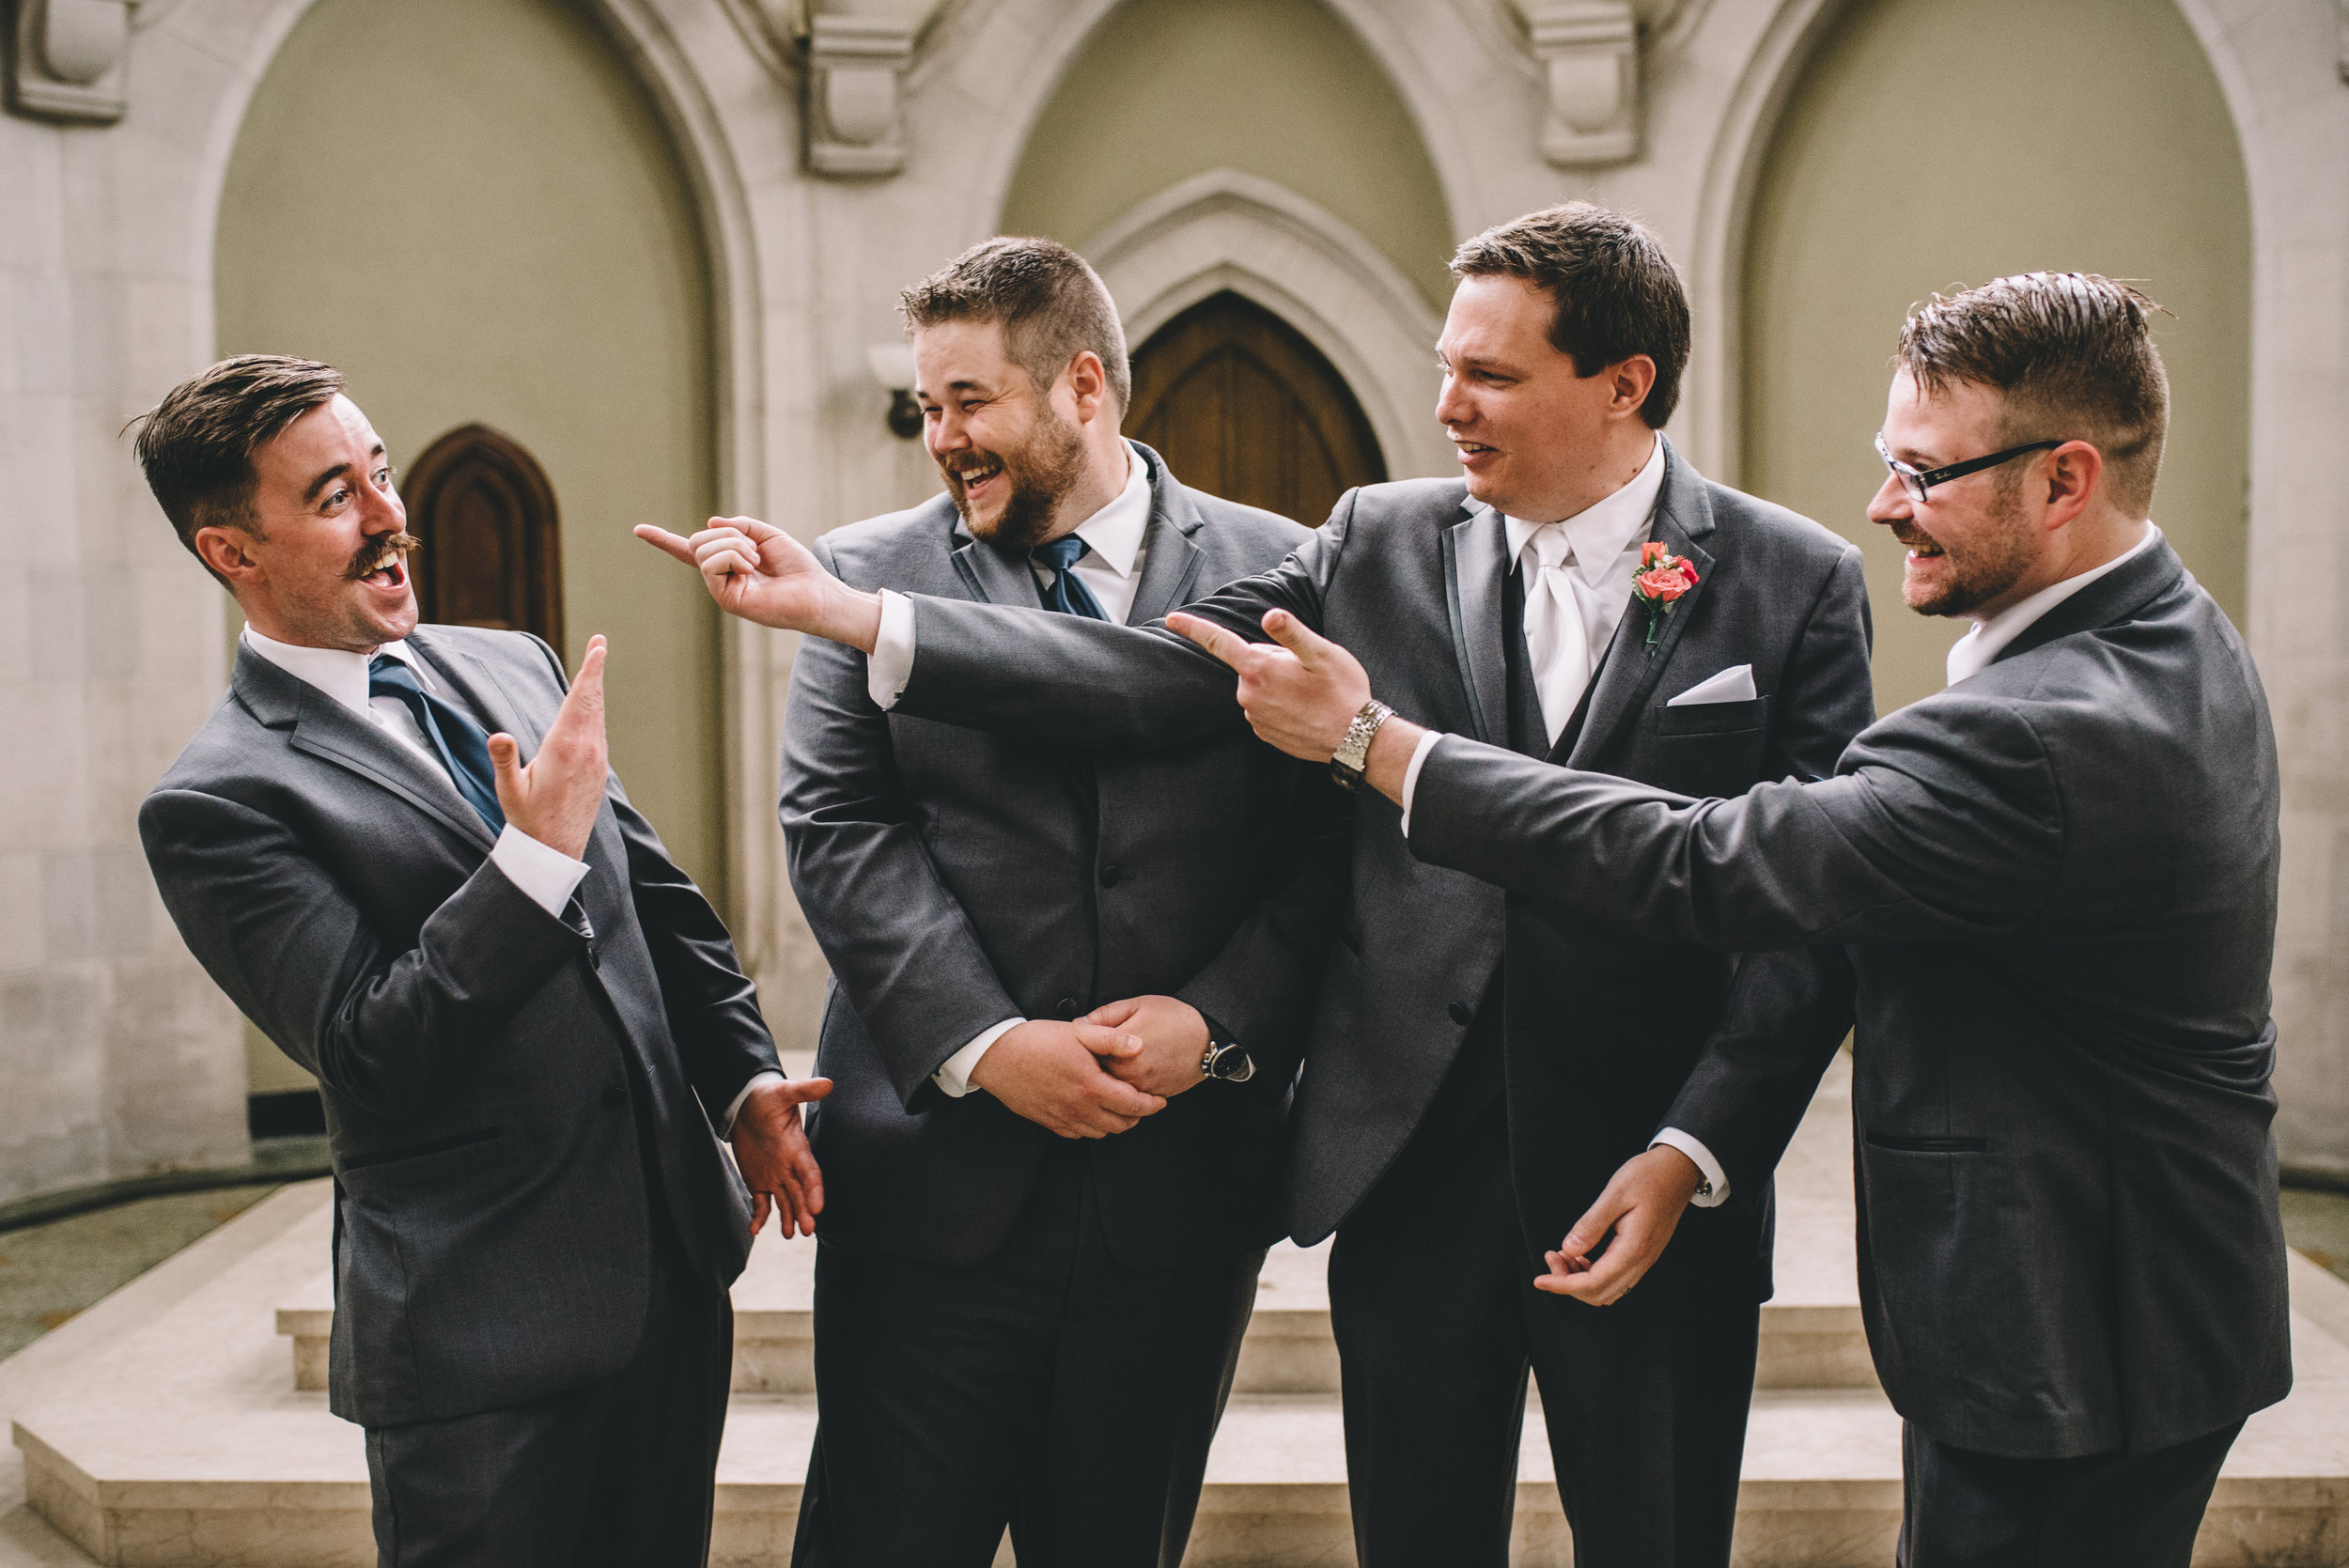 Groomsmen The Mount Community Centre Mocha Tree Studios Ottawa Wedding and Engagement Photographer and Videographer Dark Moody Intimate Authentic Modern Romantic Cinematic Best Candid ALEX + BRIAN: THE MOUNT, PETERBOROUGH, ON